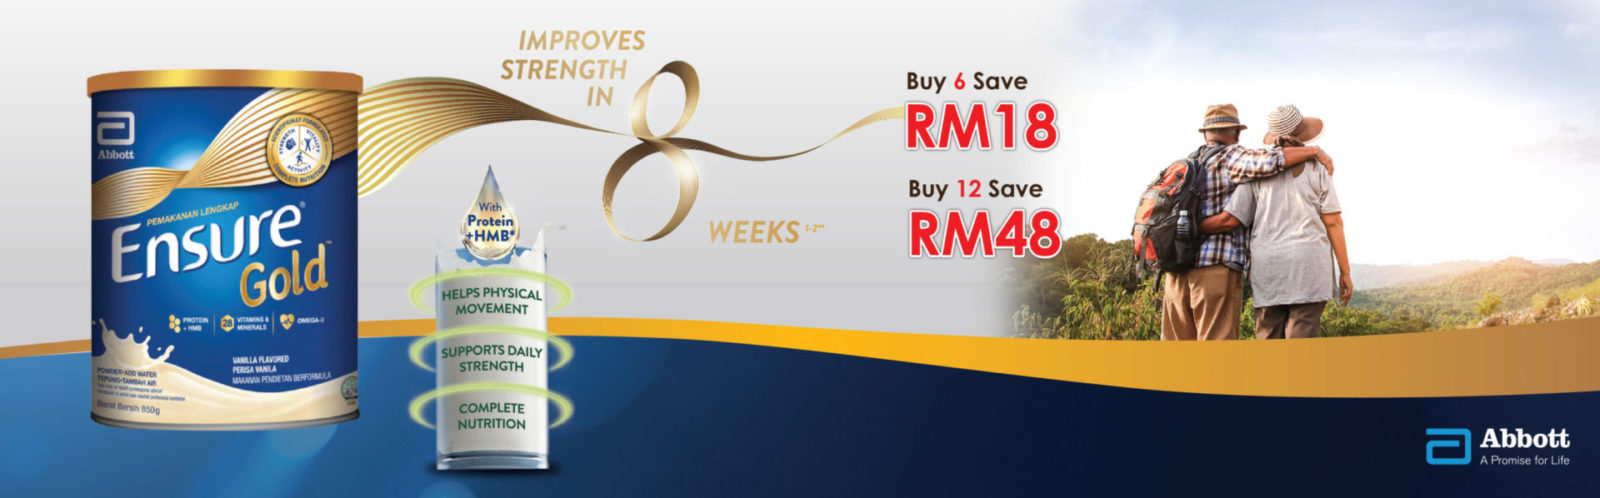 Alpro Pharmacy Oneclick buy 6 save 18 buy 12 save 48